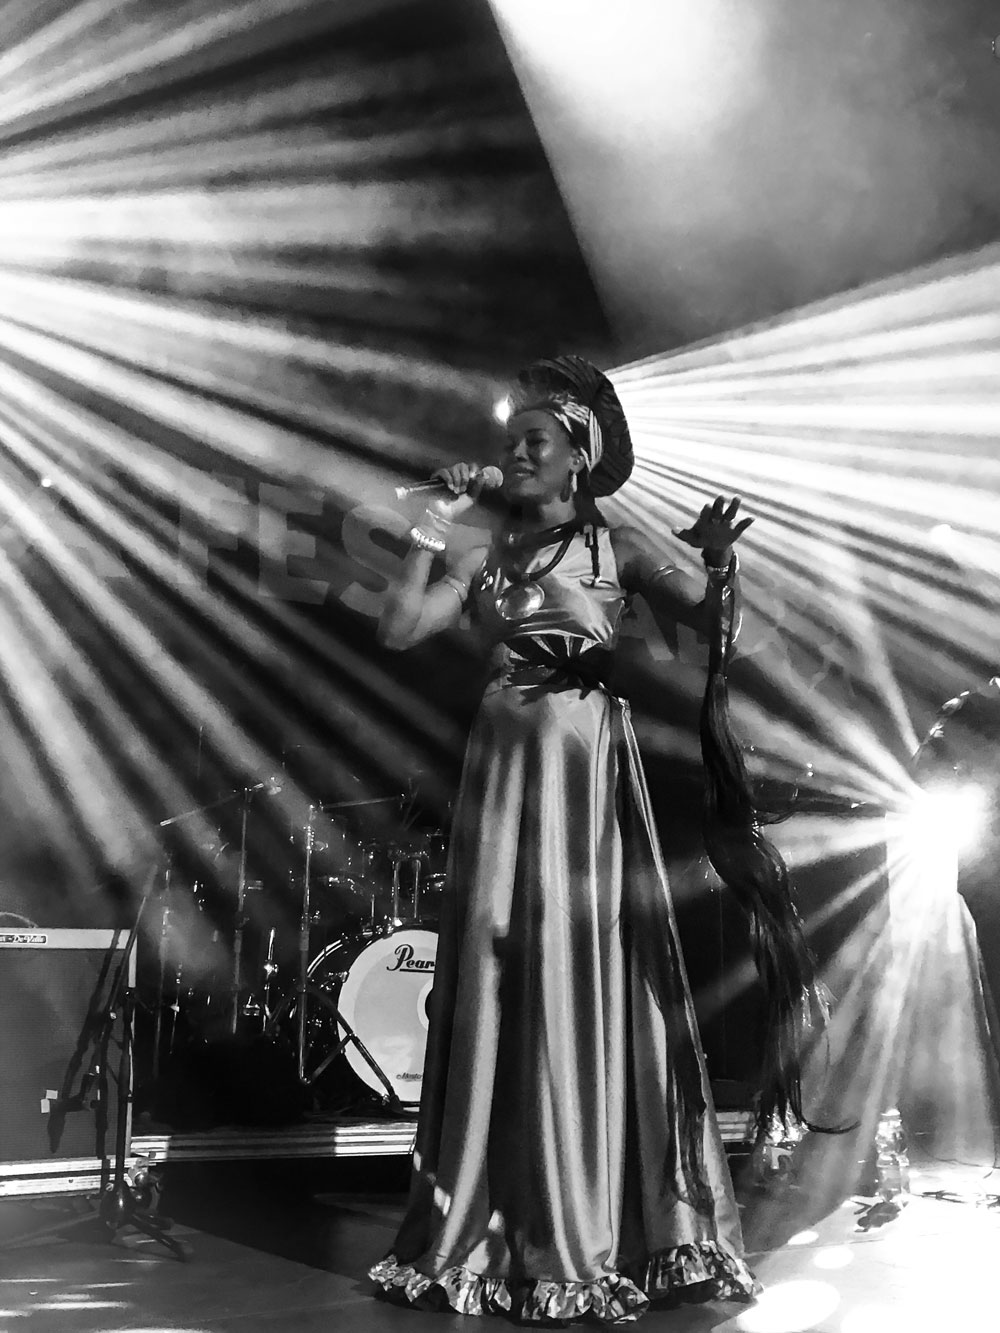 Fatoumata Diawara on stage © Mario Gerth